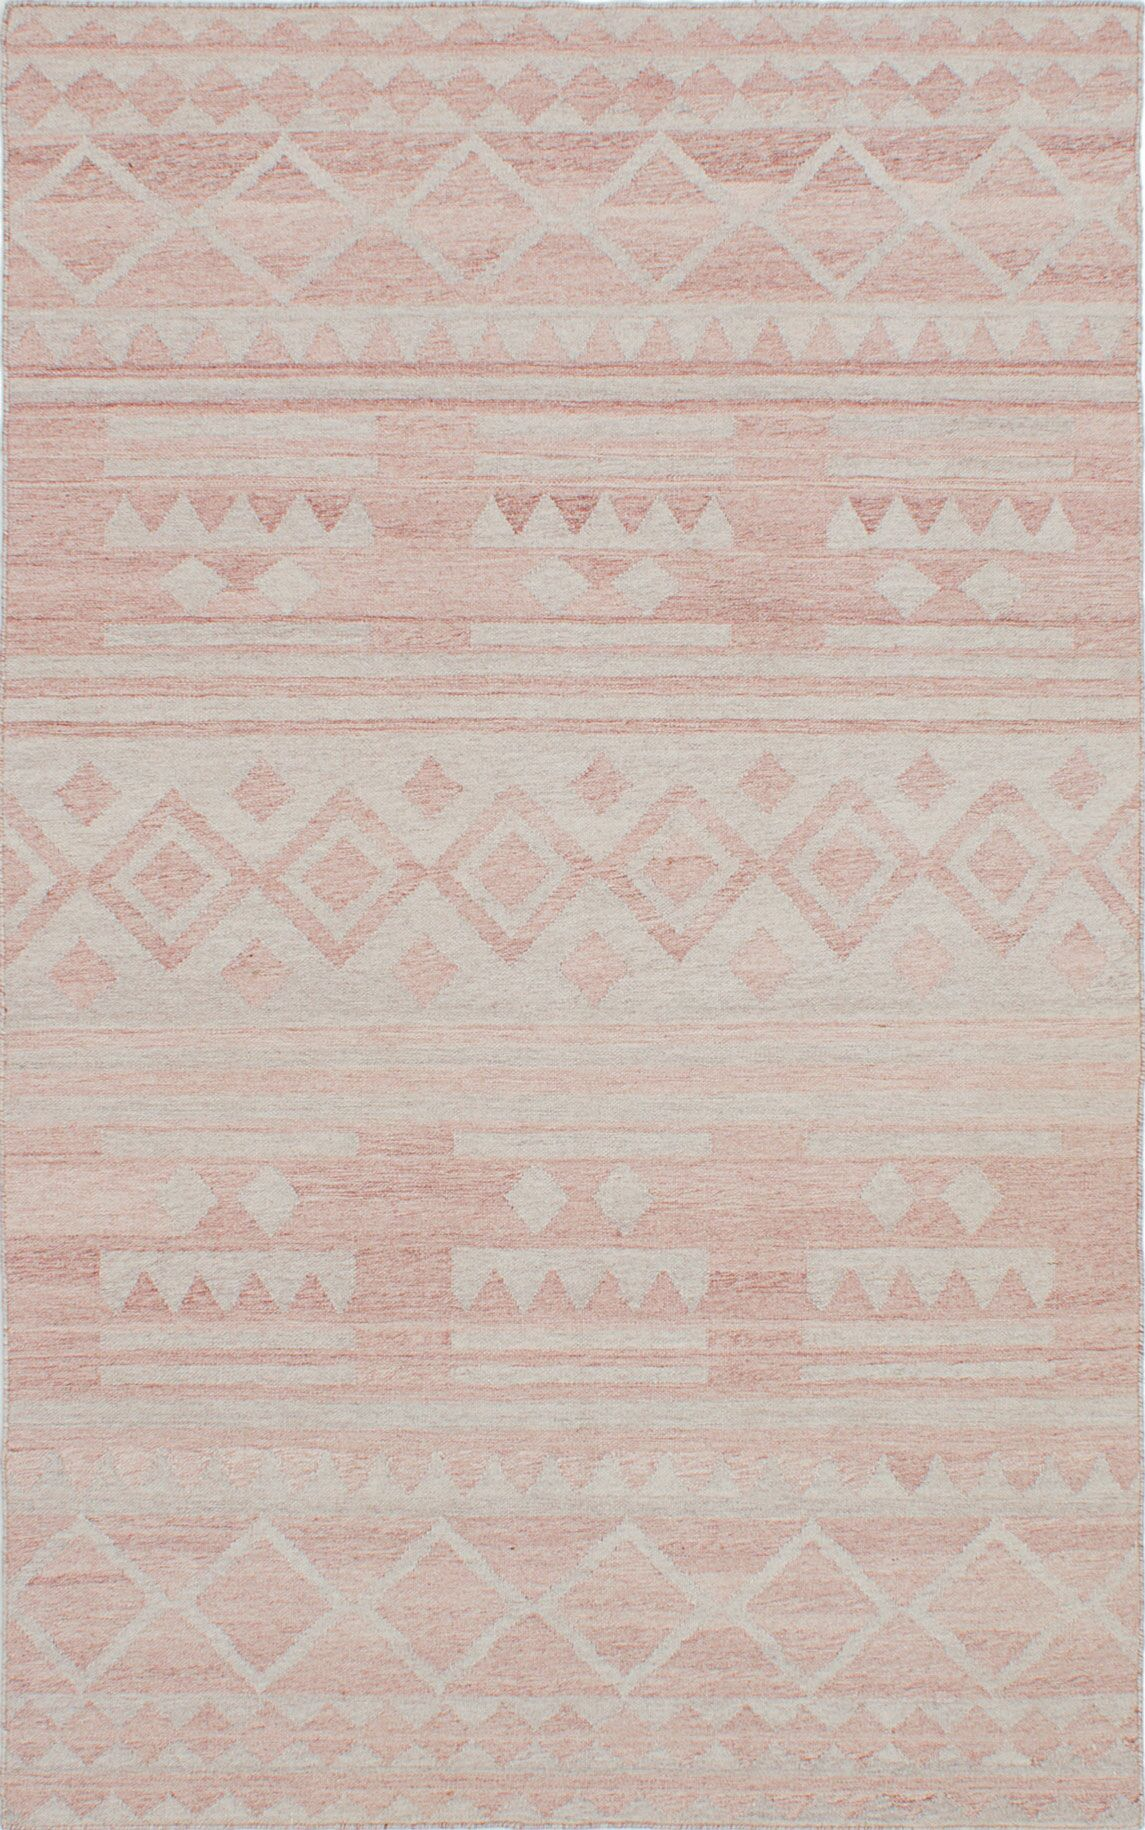 Tribeca Hand-Woven Brown/Gray Area Rug Rug Size: 5' x 8'